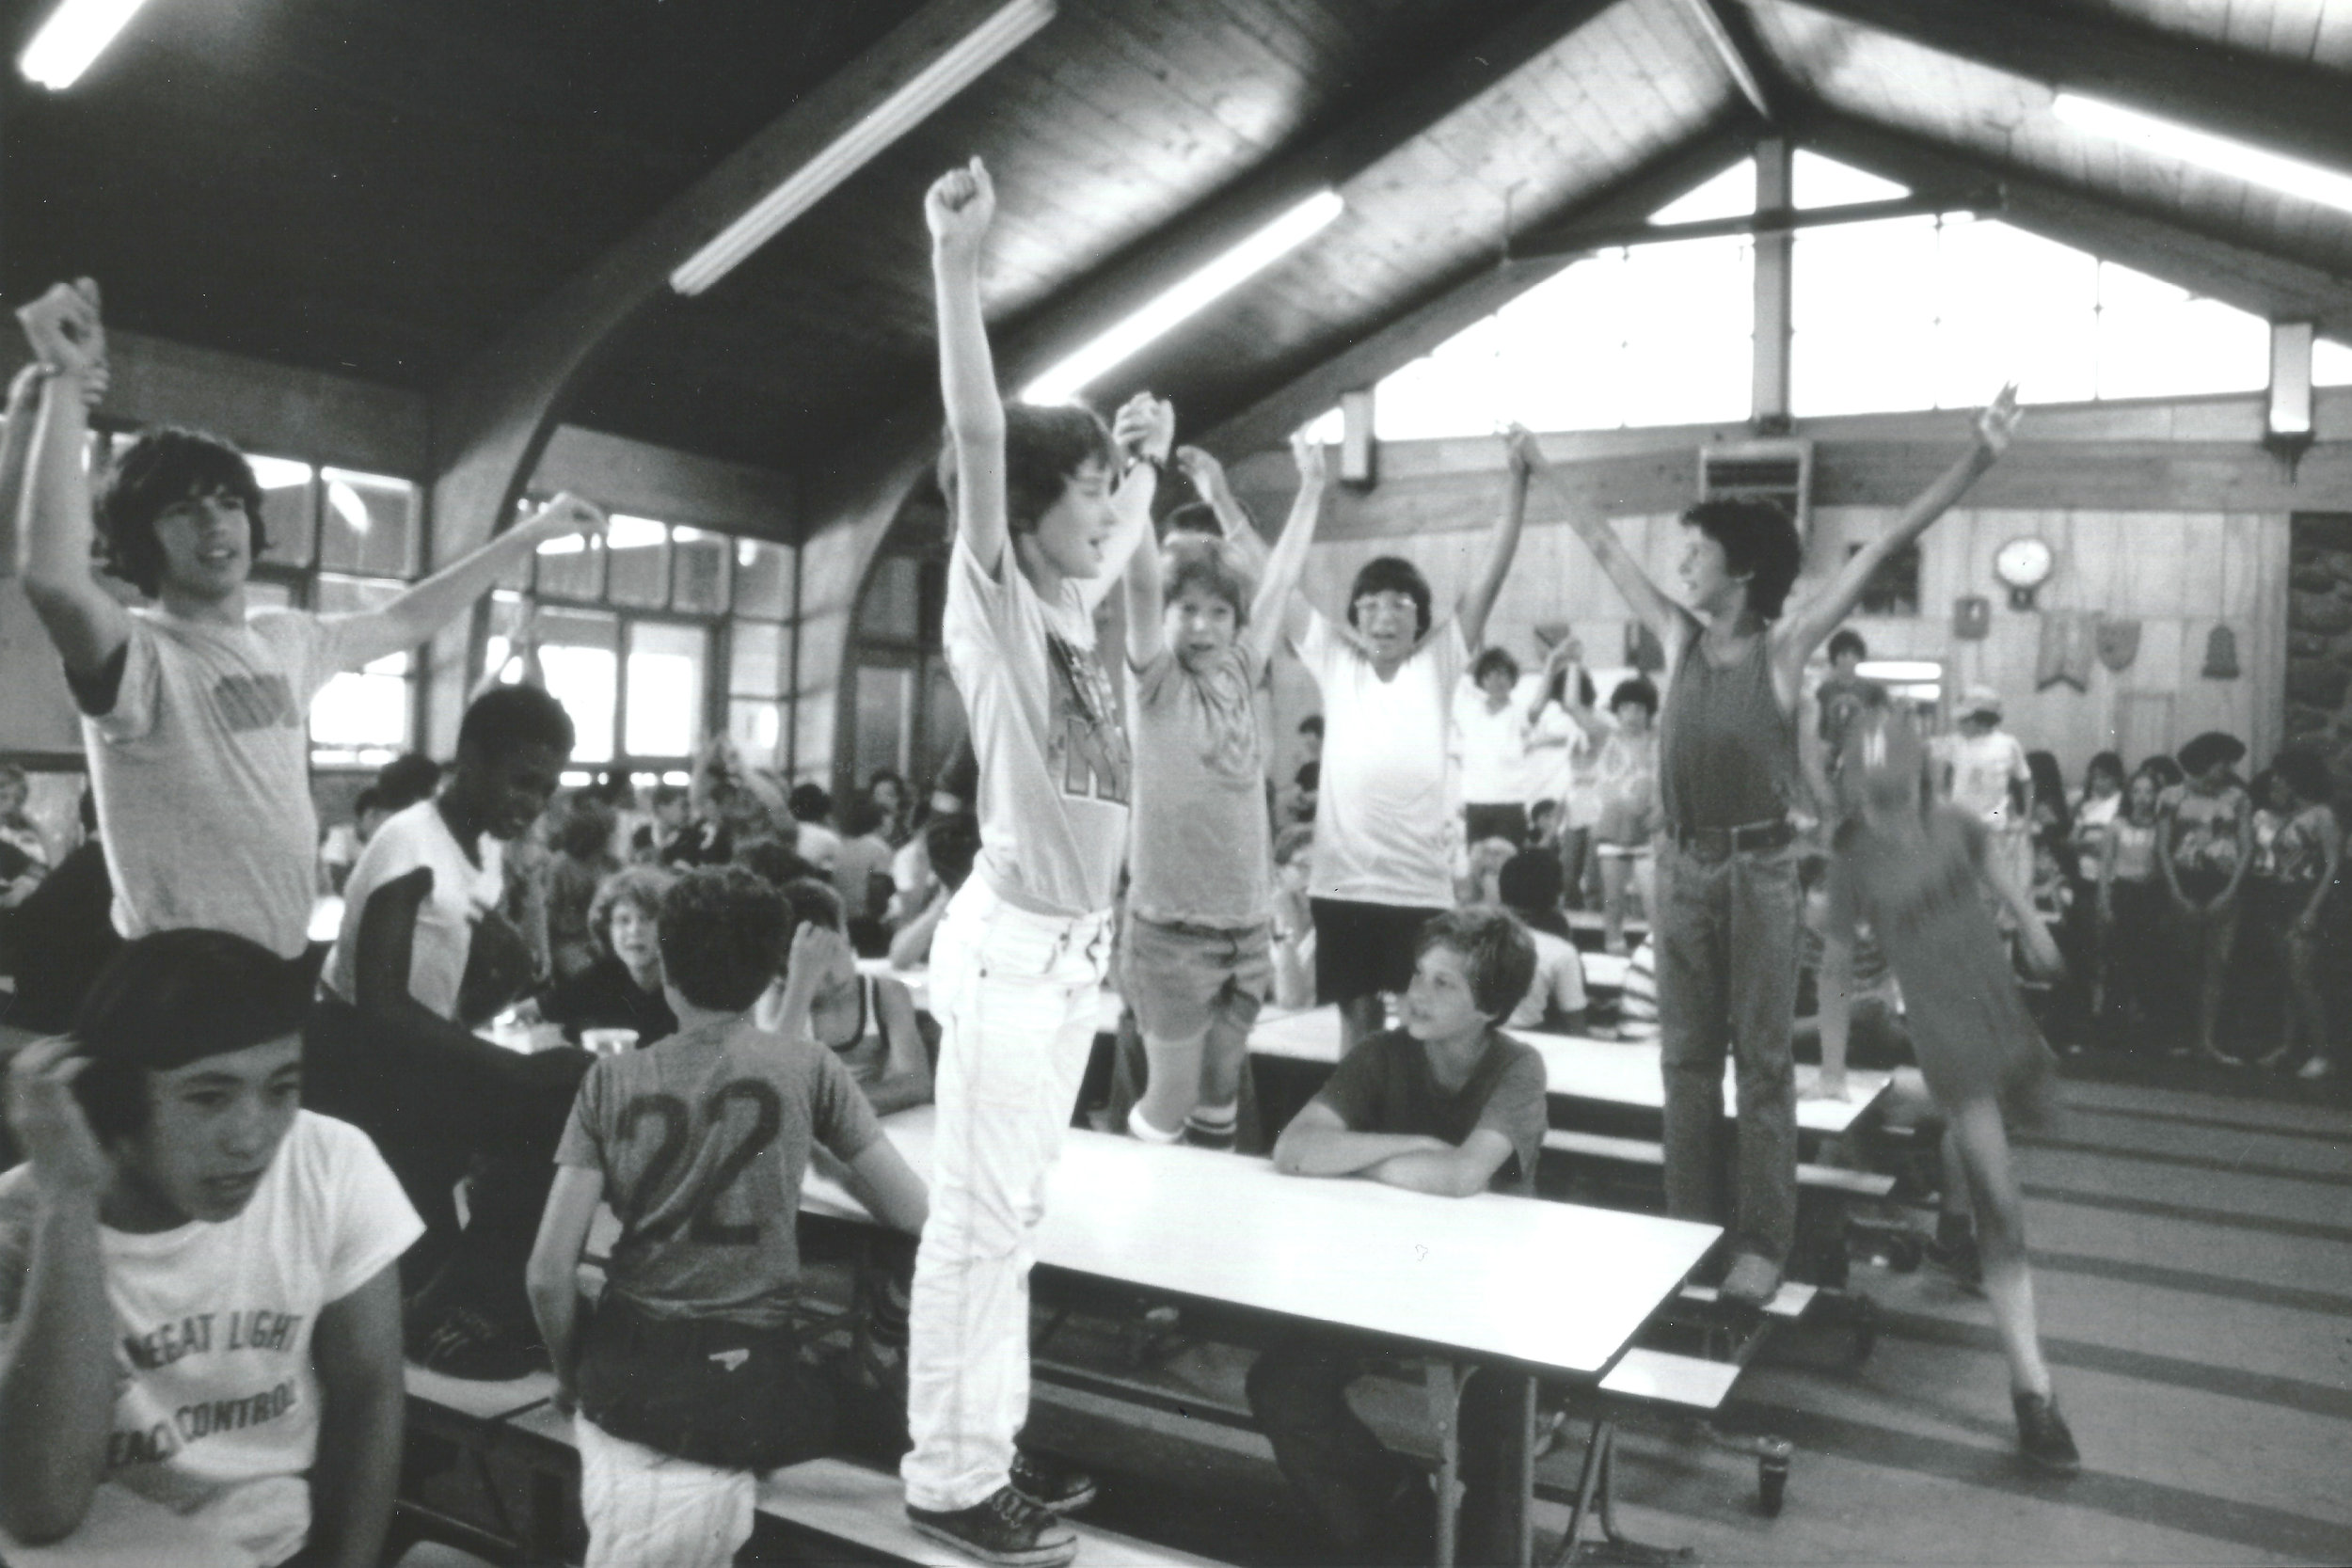 Part 2-1970s Dialysis Camp jumping 9 x6.jpg